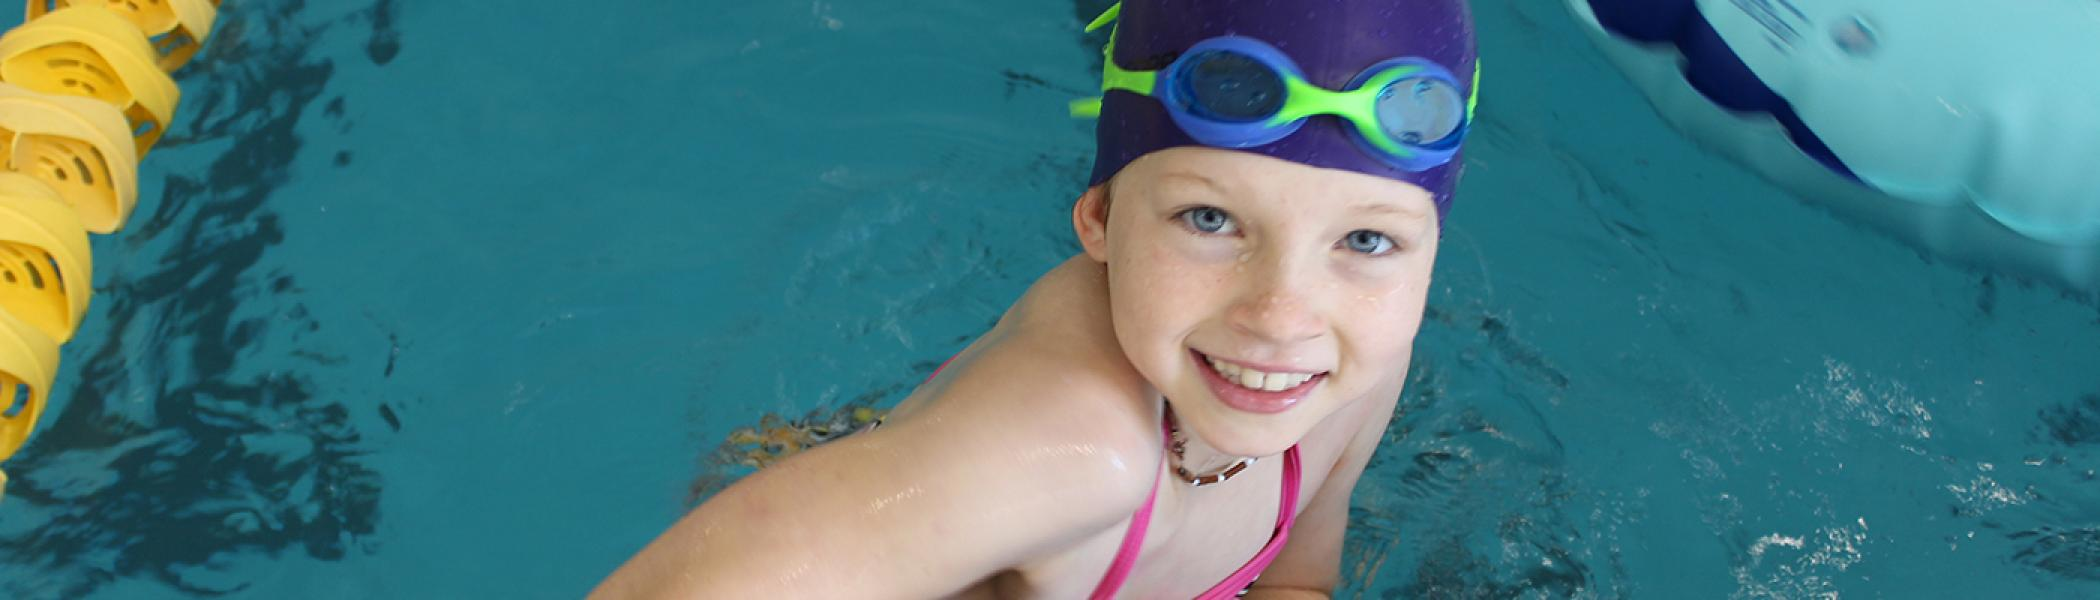 Young swimmer with bathing cap and goggles ready to swim